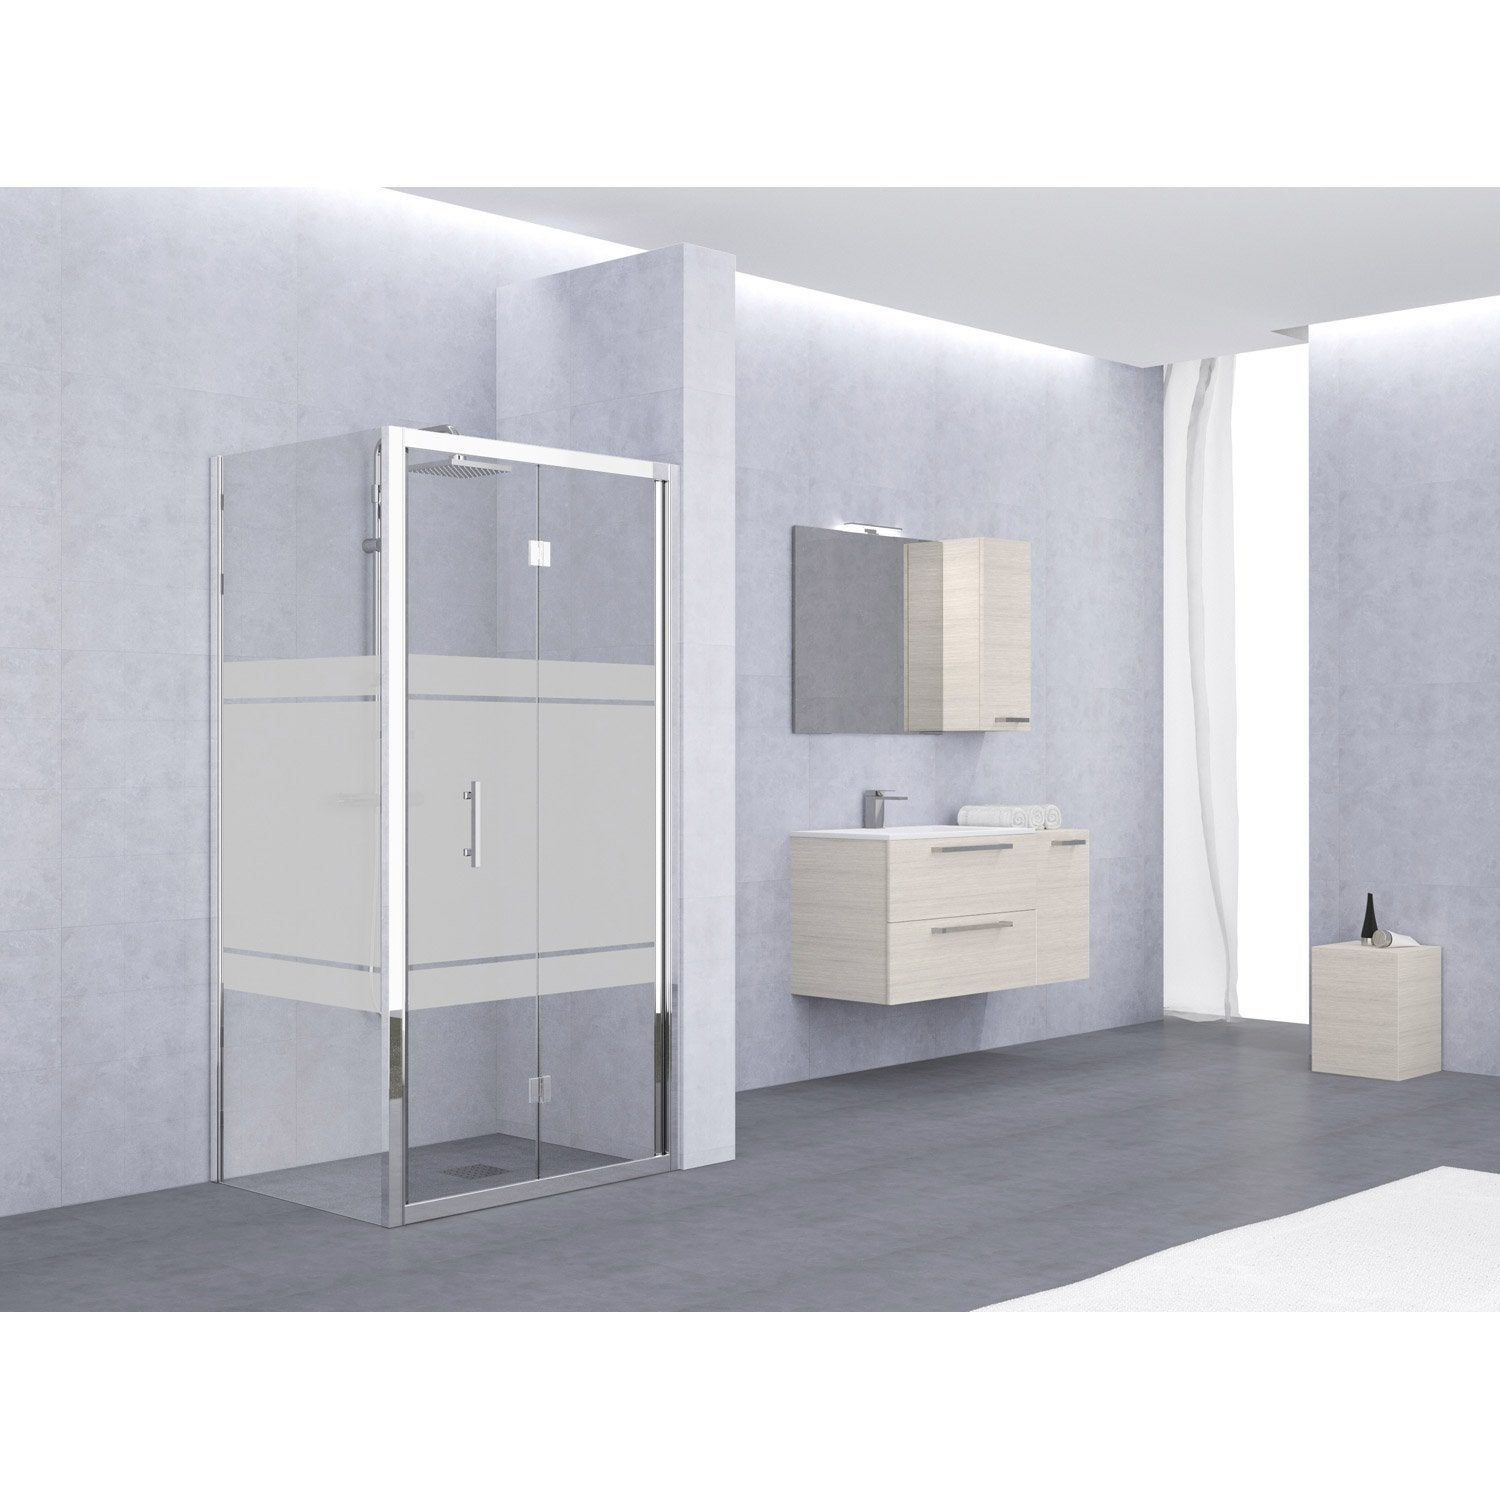 porte de douche pliante leroy merlin. Black Bedroom Furniture Sets. Home Design Ideas